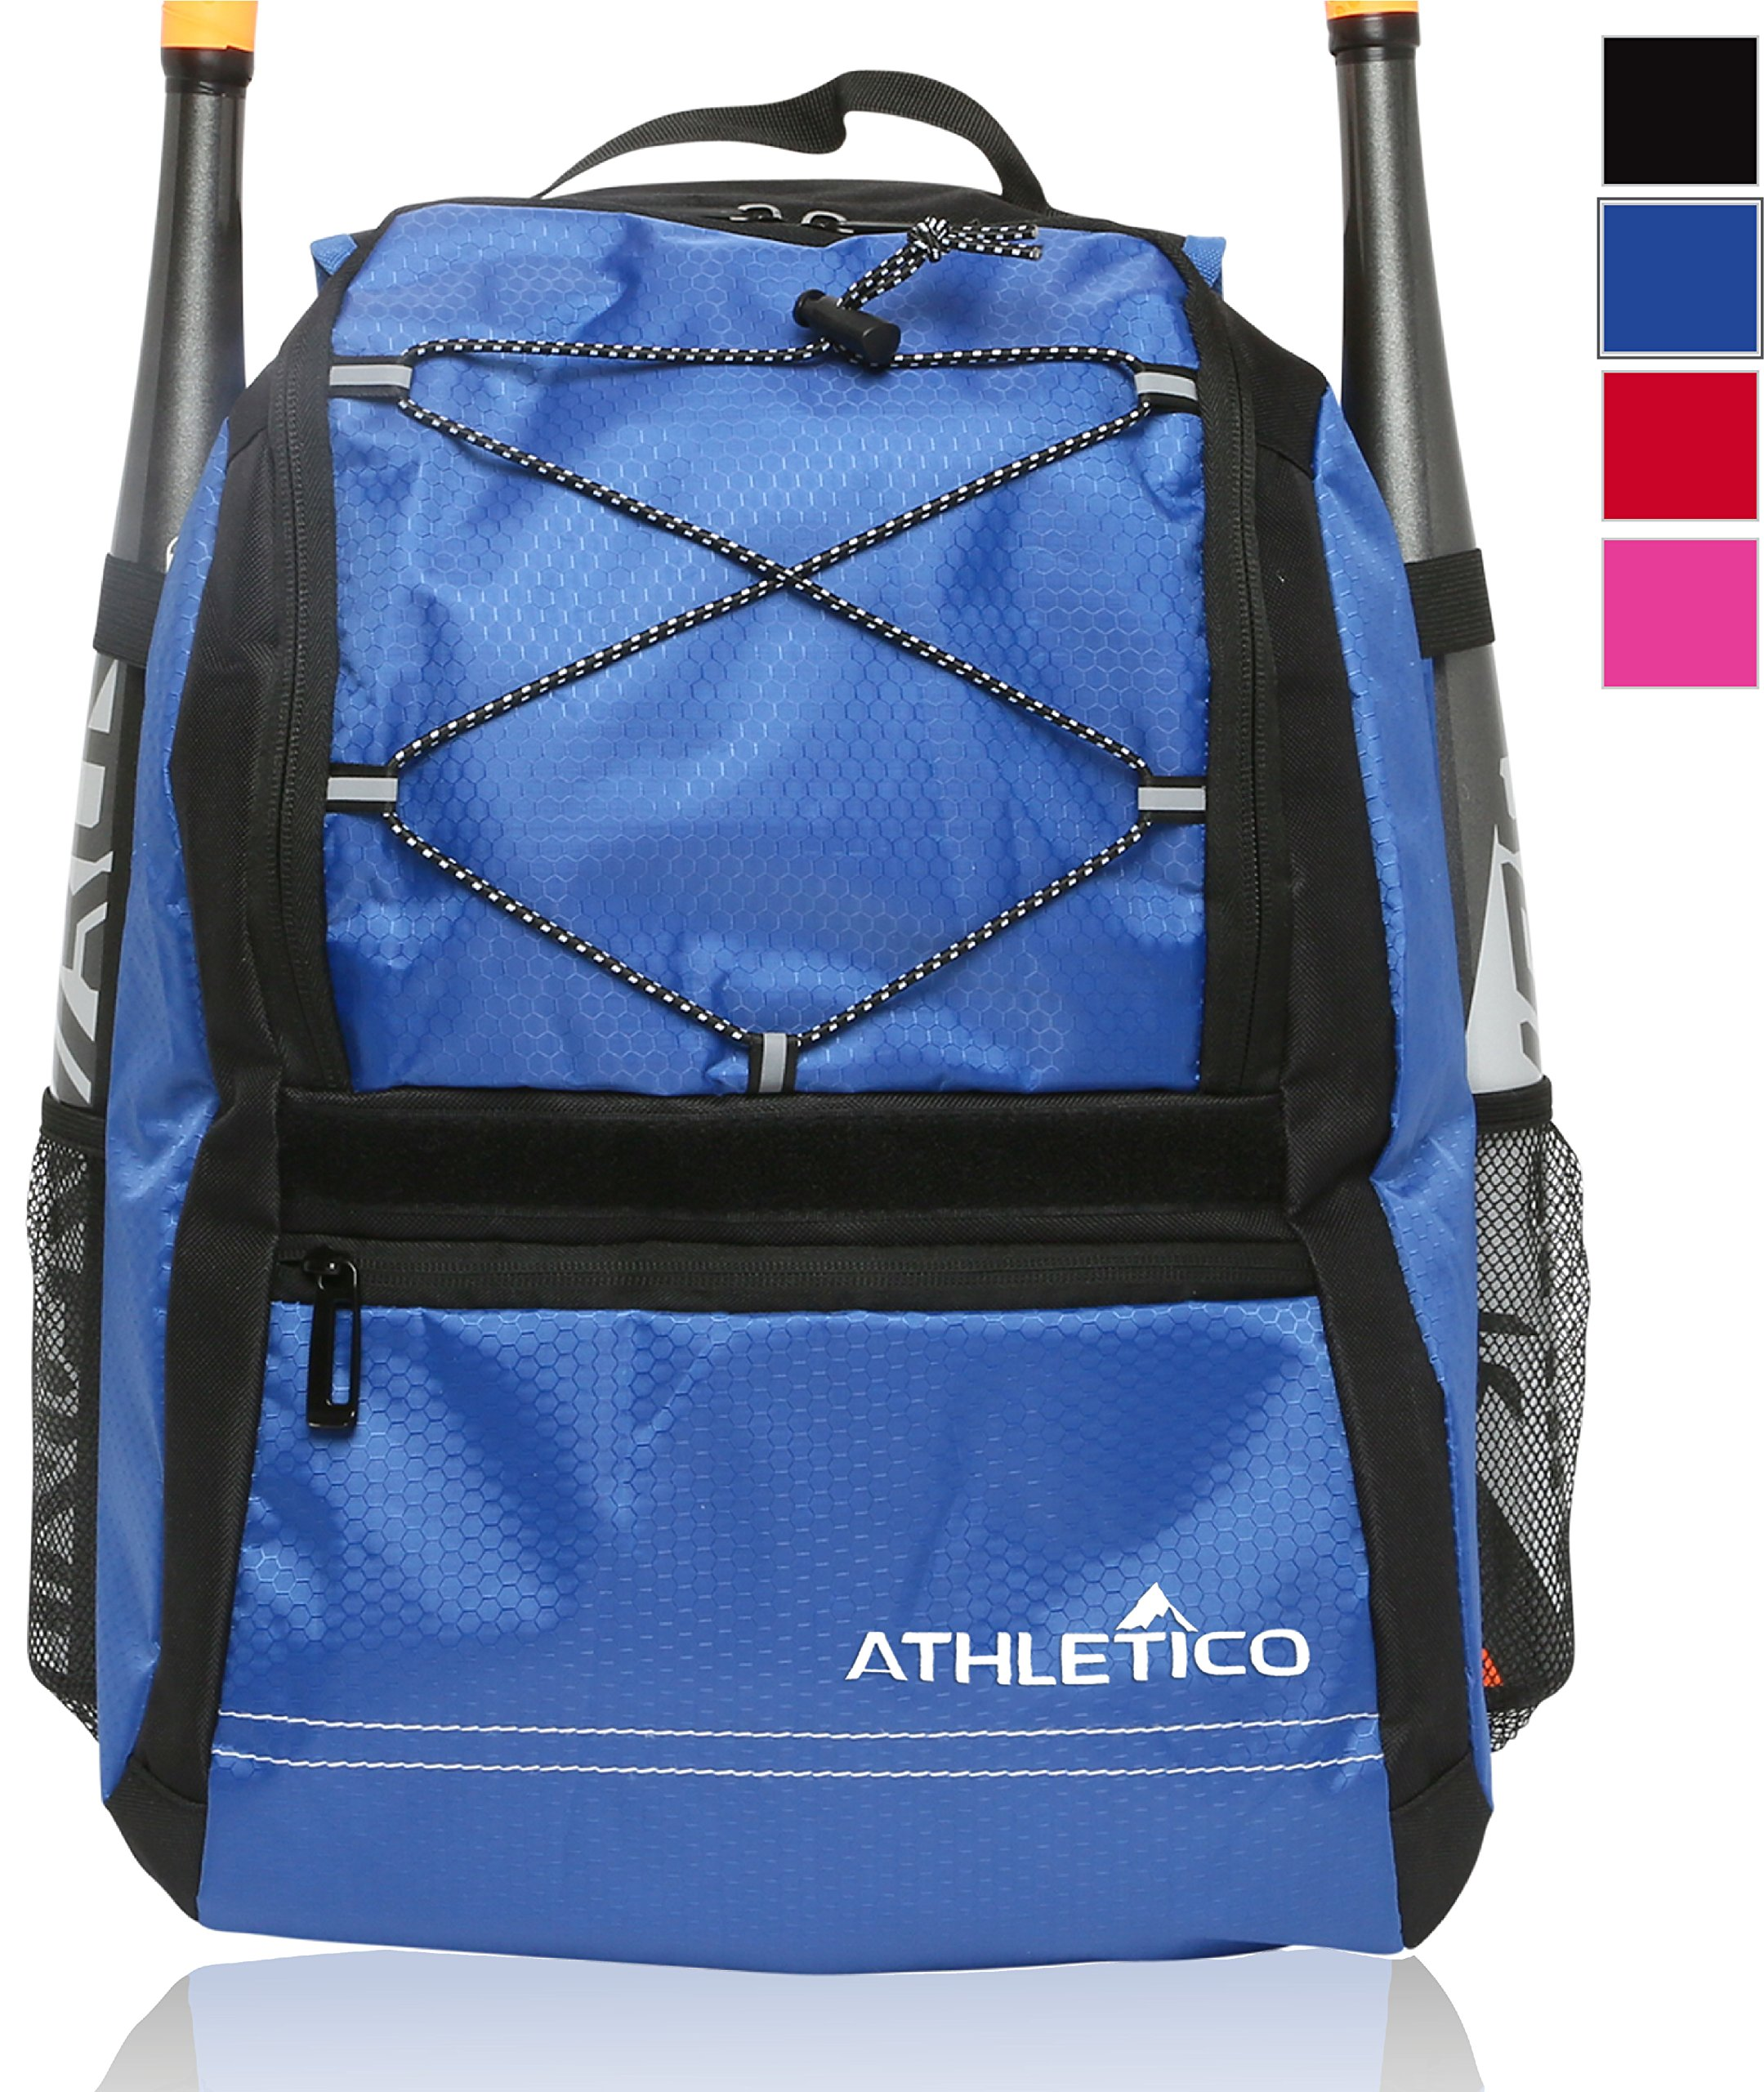 Athletico Youth Baseball Bag - Bat Backpack for Baseball, T-Ball & Softball Equipment & Gear | Holds Bat, Helmet, Glove | Fence Hook (Blue) by Athletico